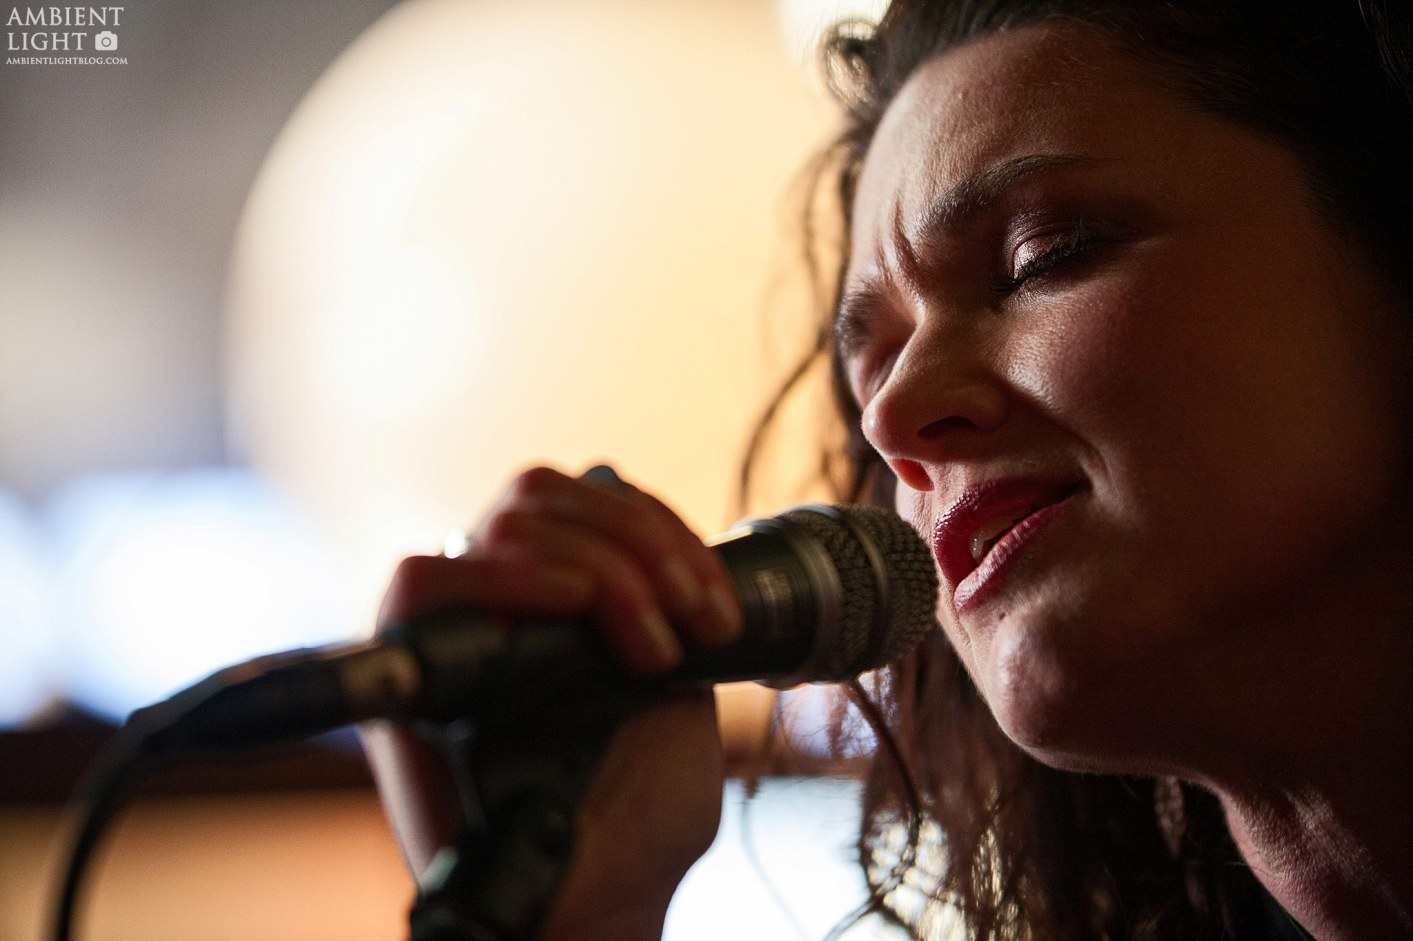 Julia Deans performing live in Auckland New Zealand 2017. Image by Doug Peters.